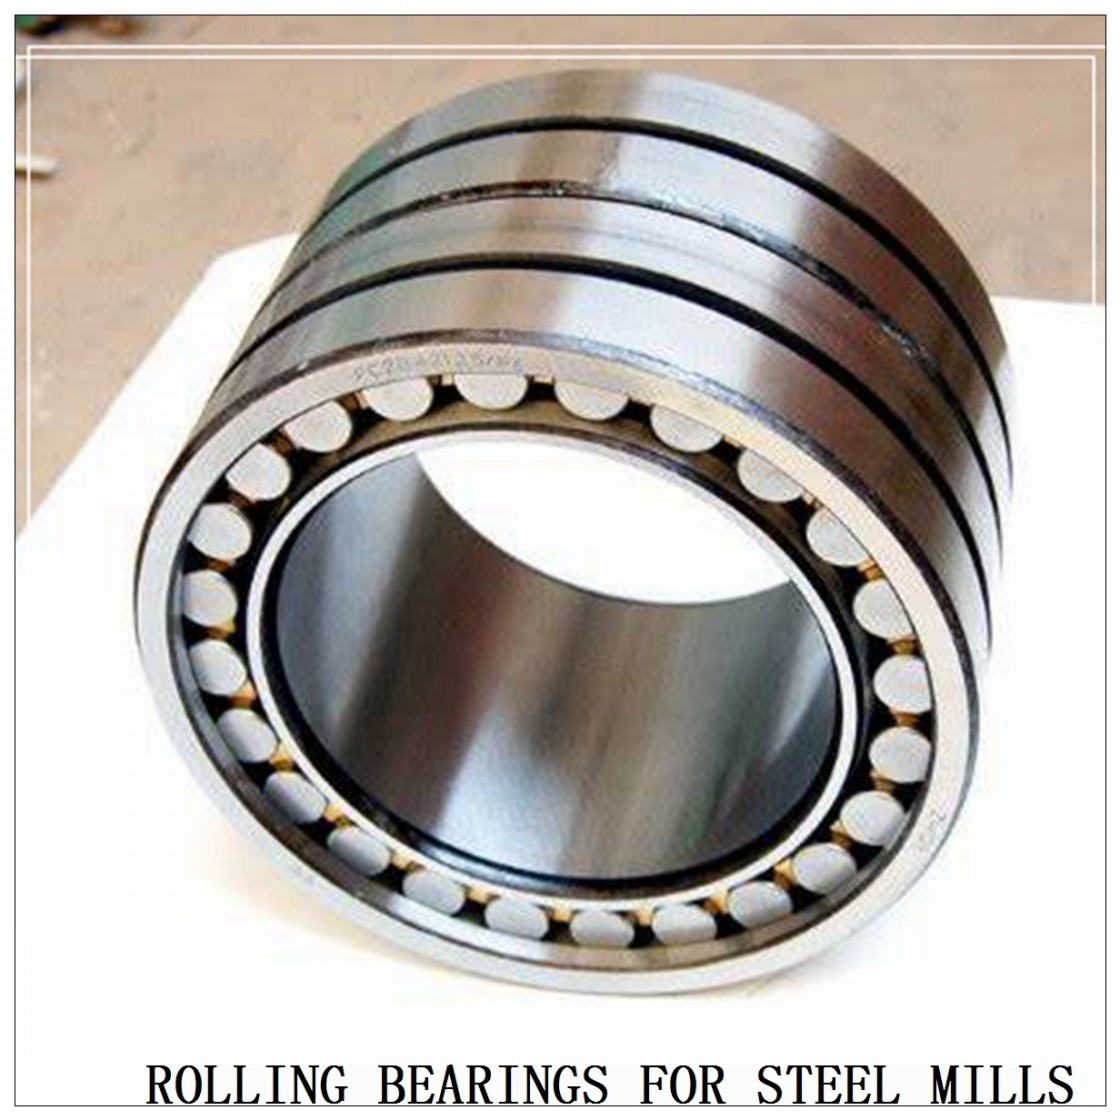 NSK 200KV81 ROLLING BEARINGS FOR STEEL MILLS